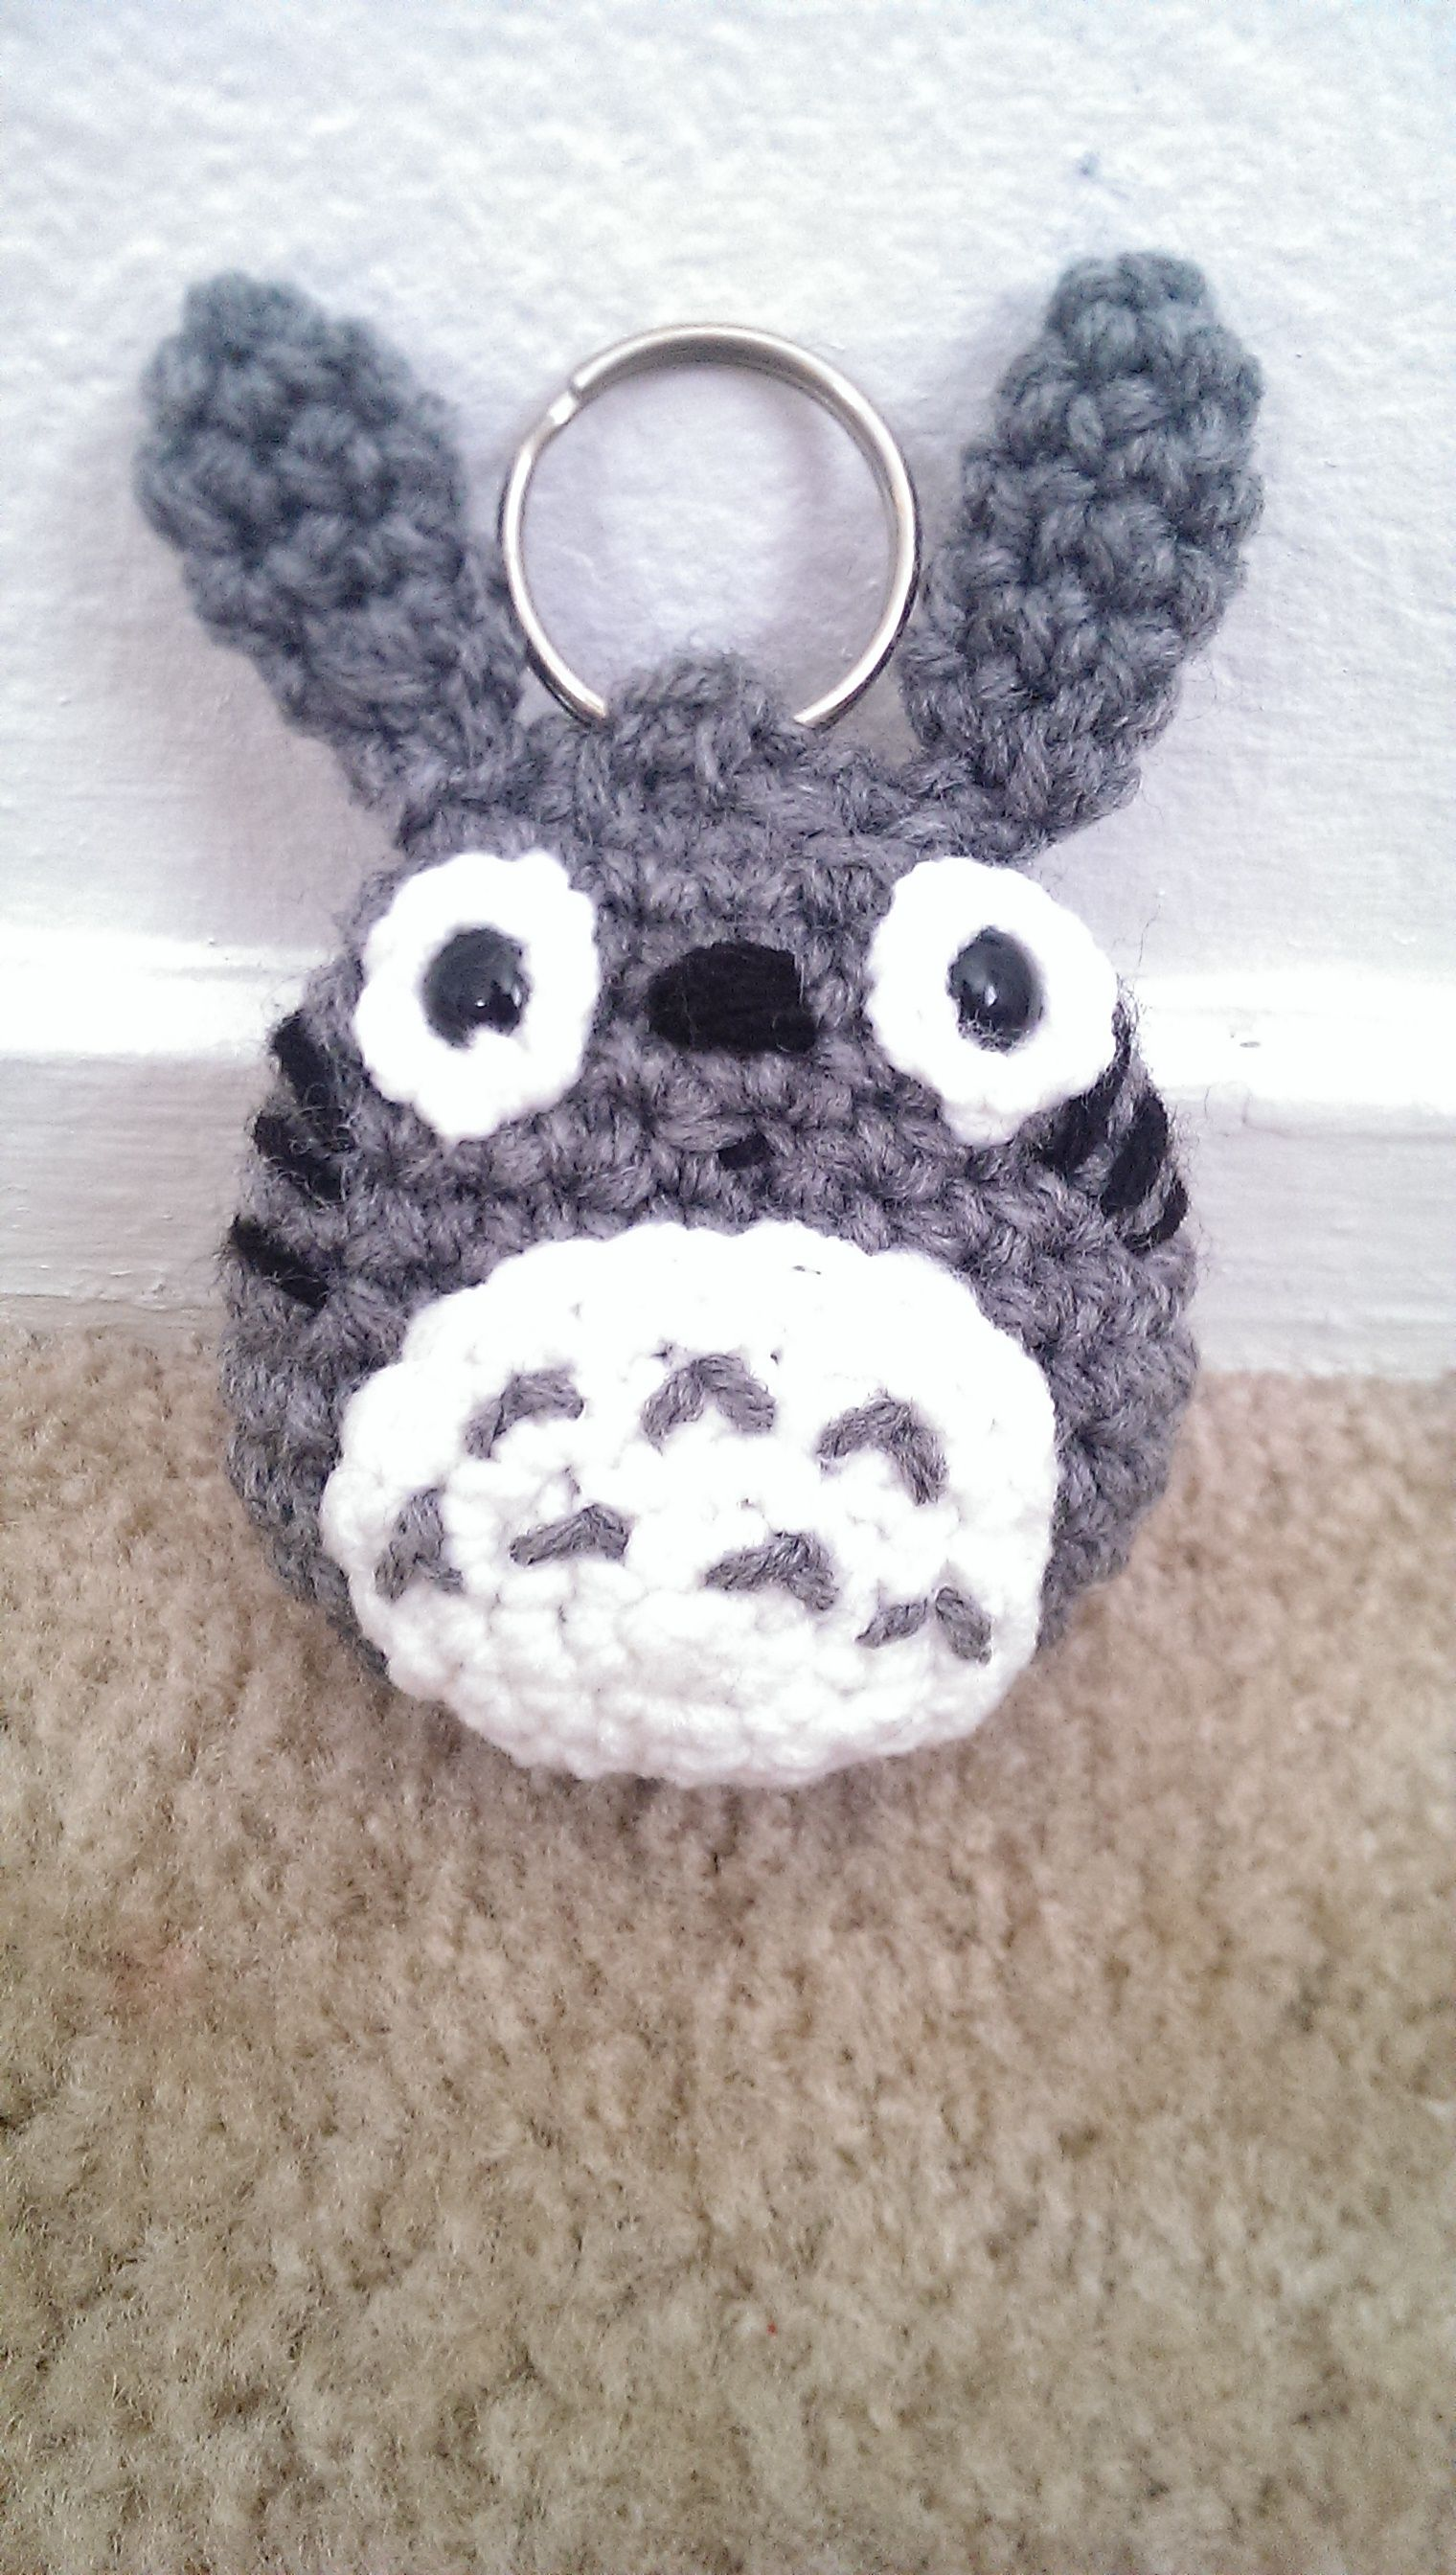 totoro key chain · uniqueecreations · Online Store Powered by Storenvy